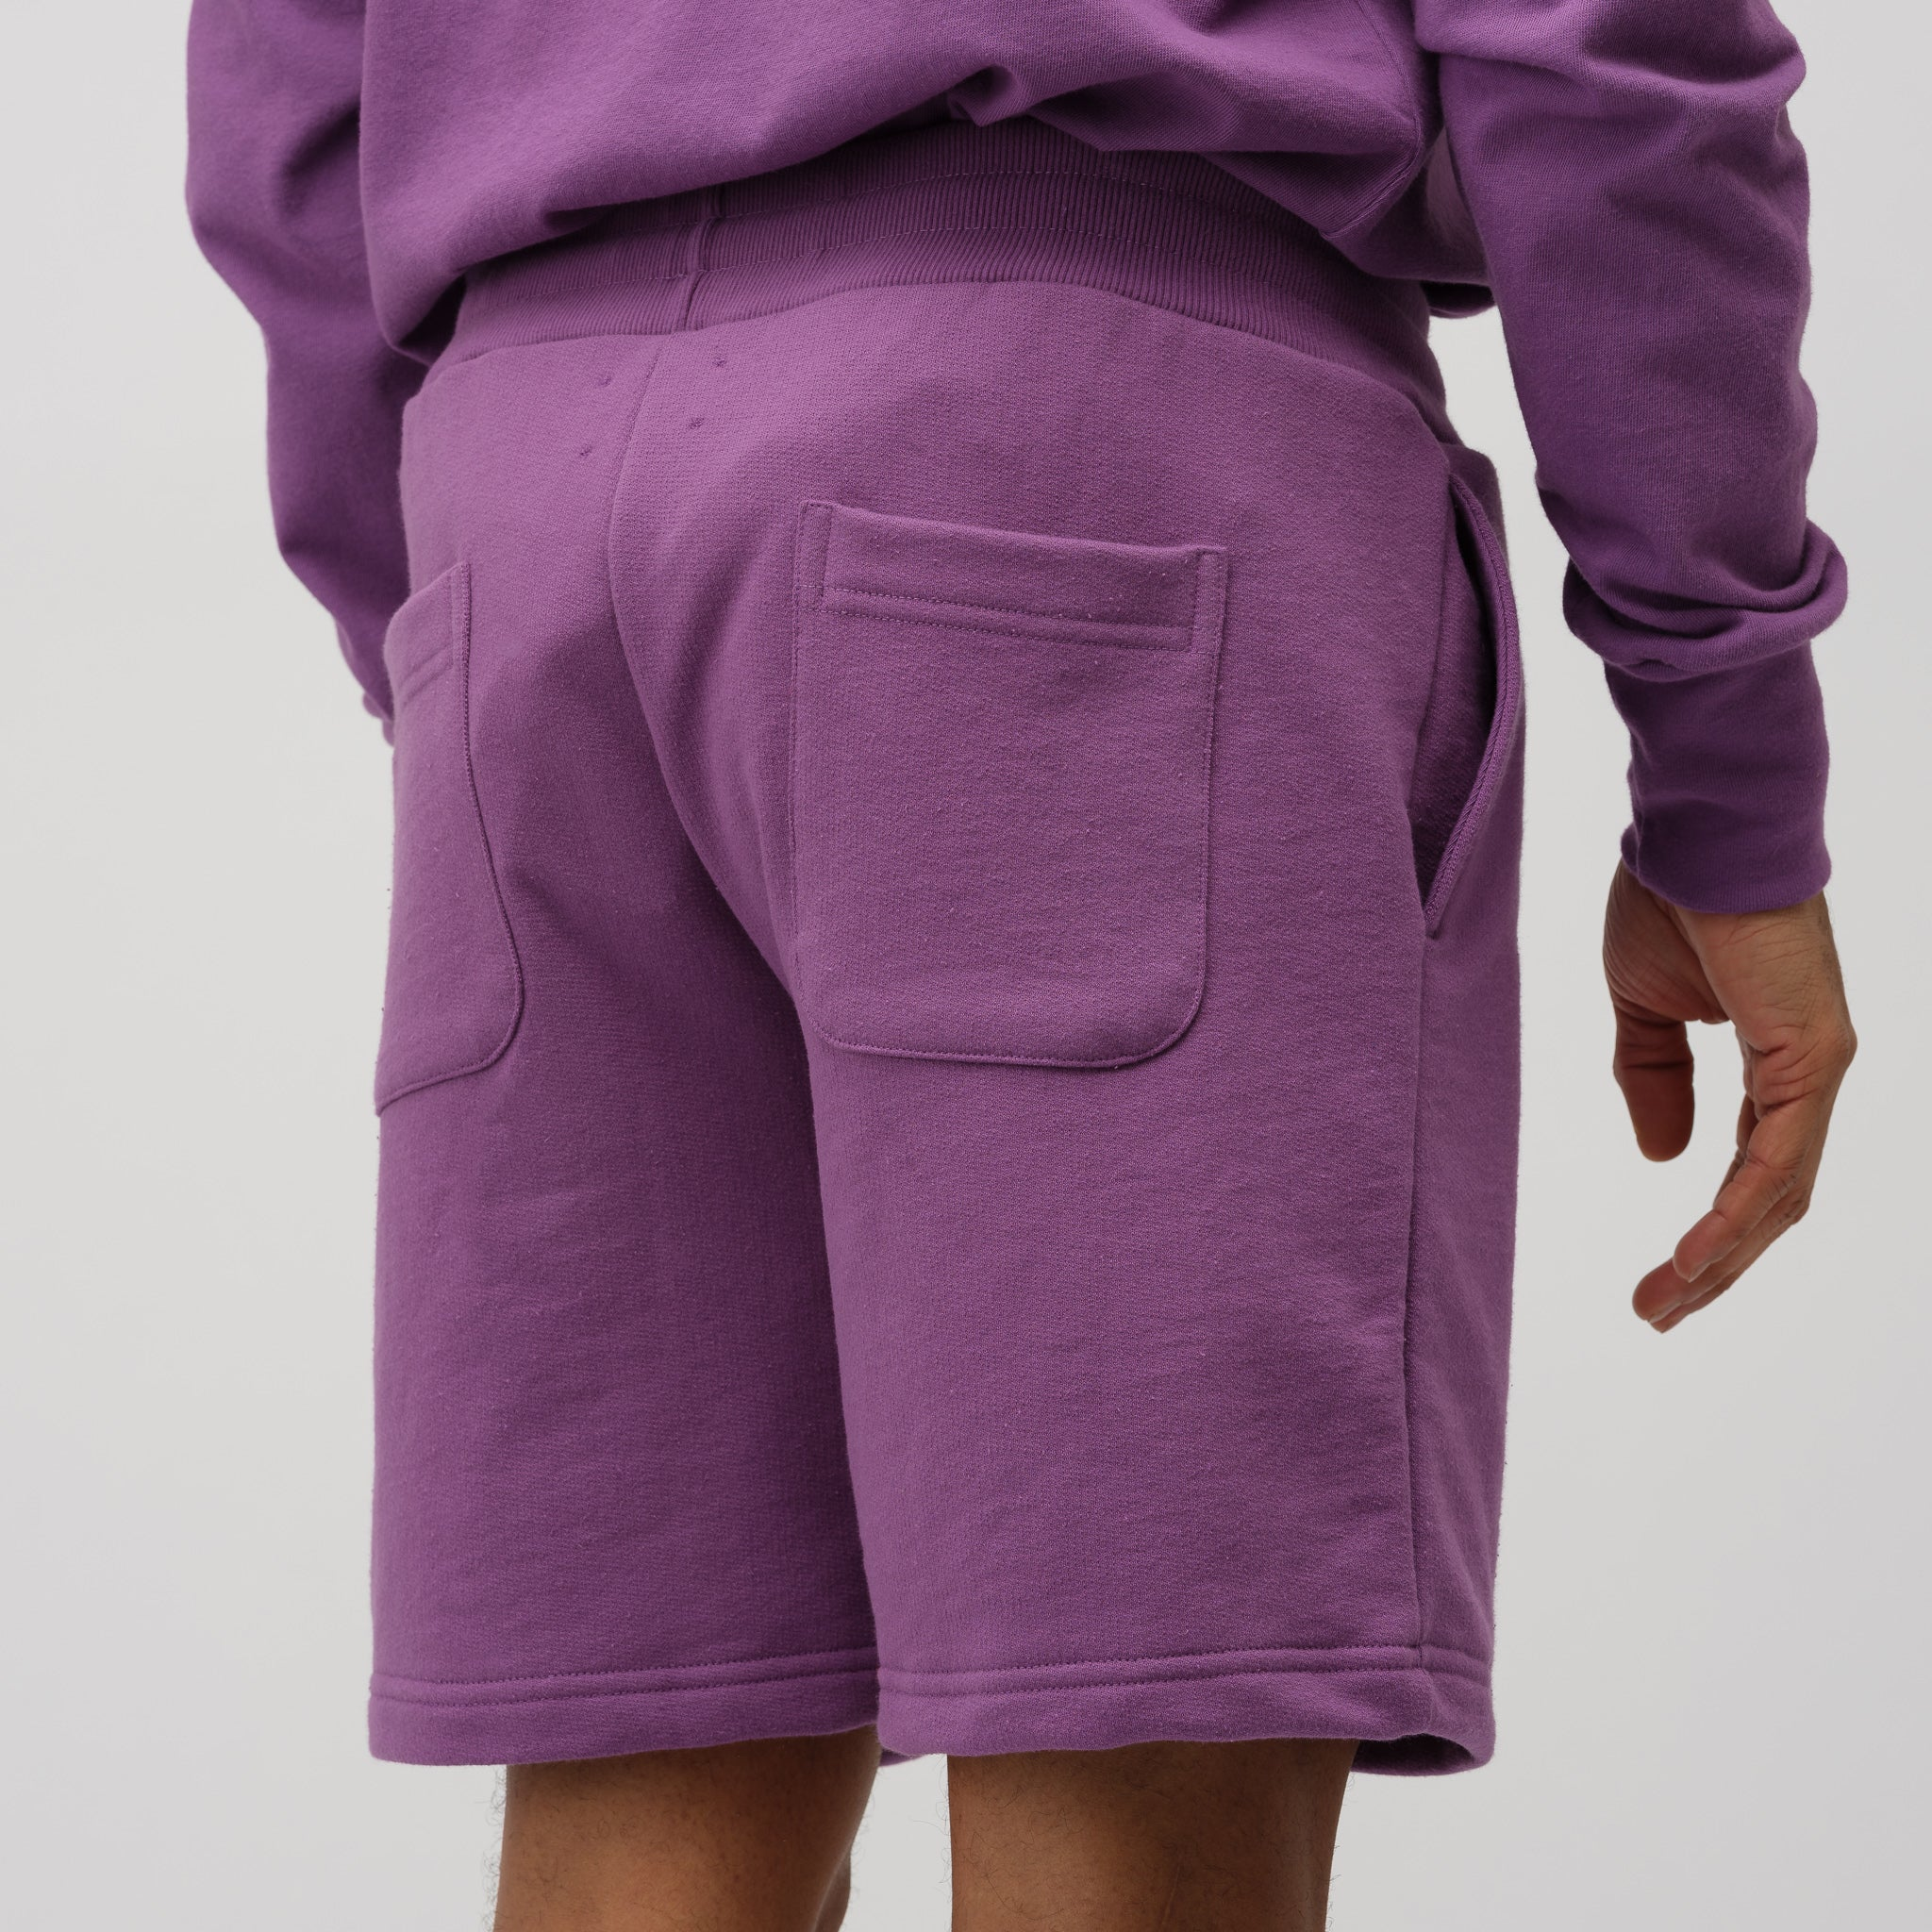 French Terry Shorts in Purple Tape